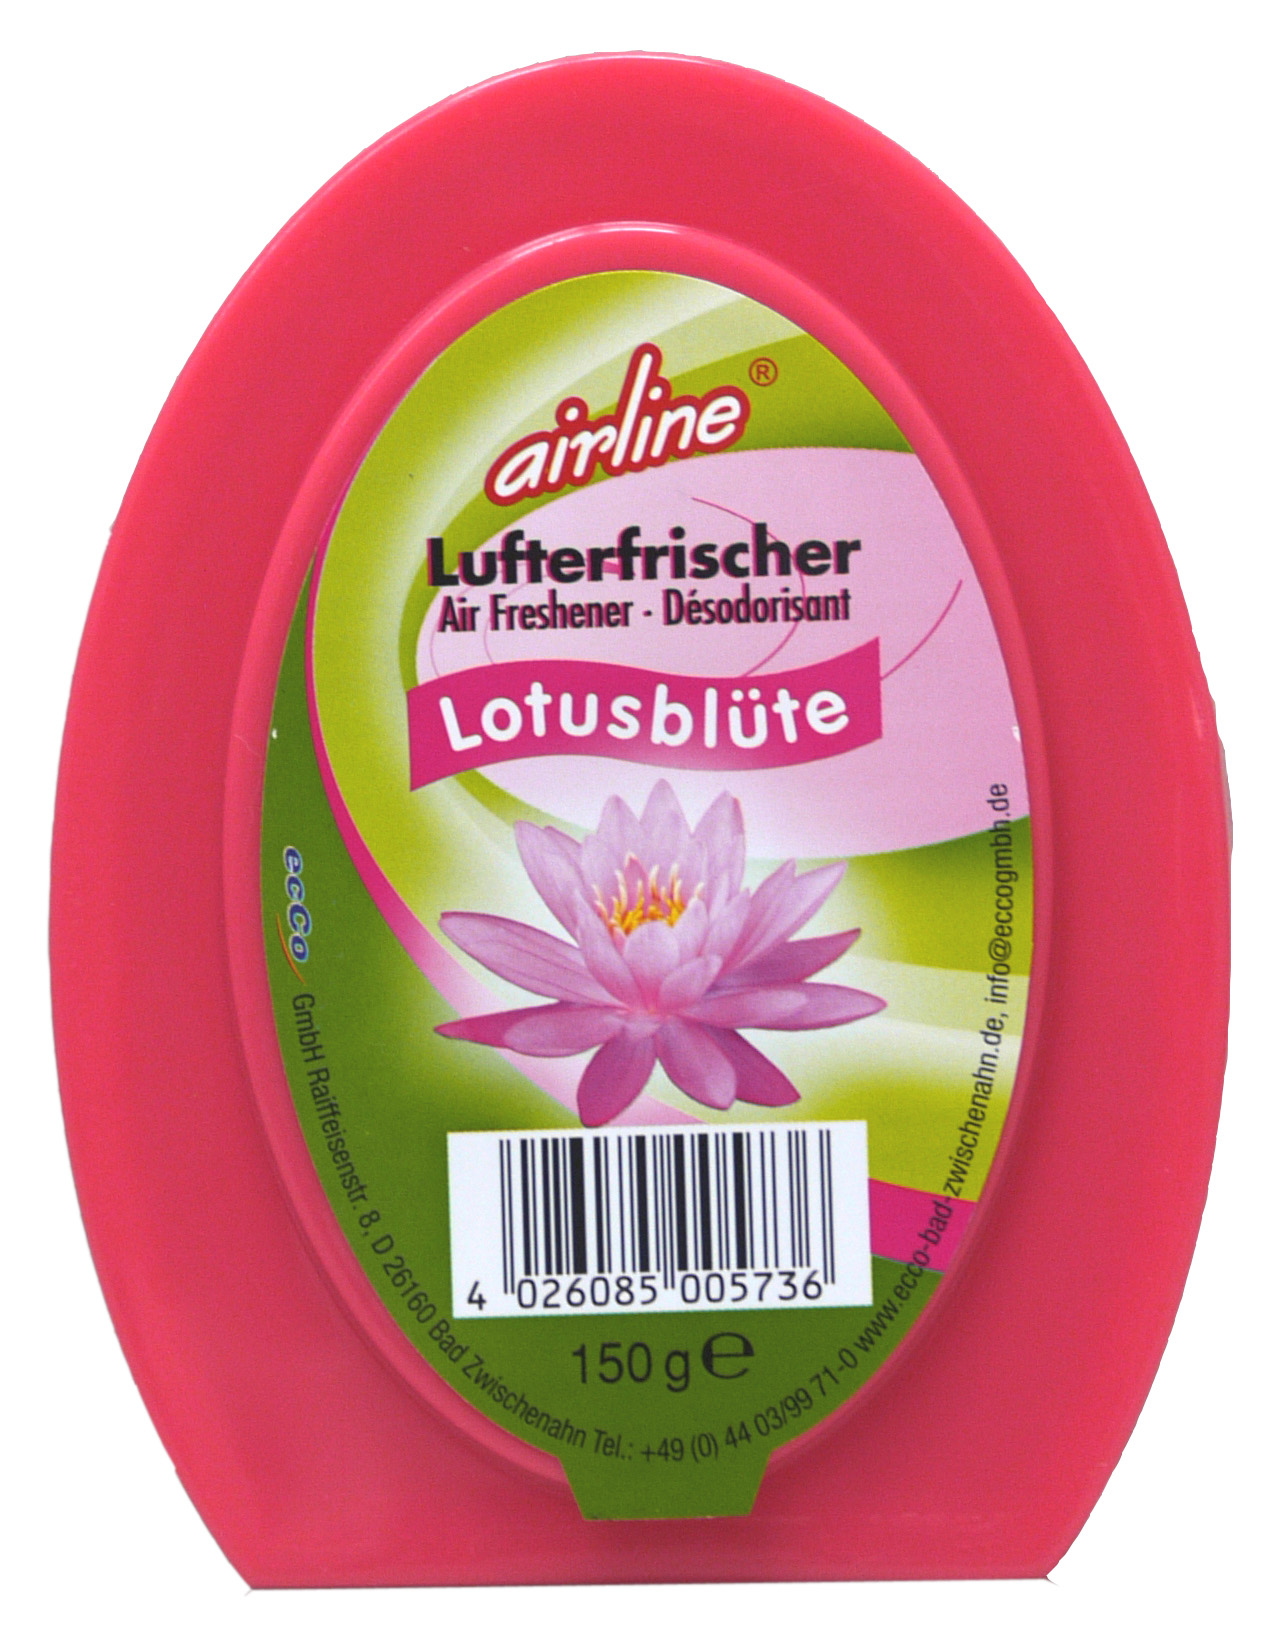 00573 - airline Duftgel 150 g -Lotusblüte